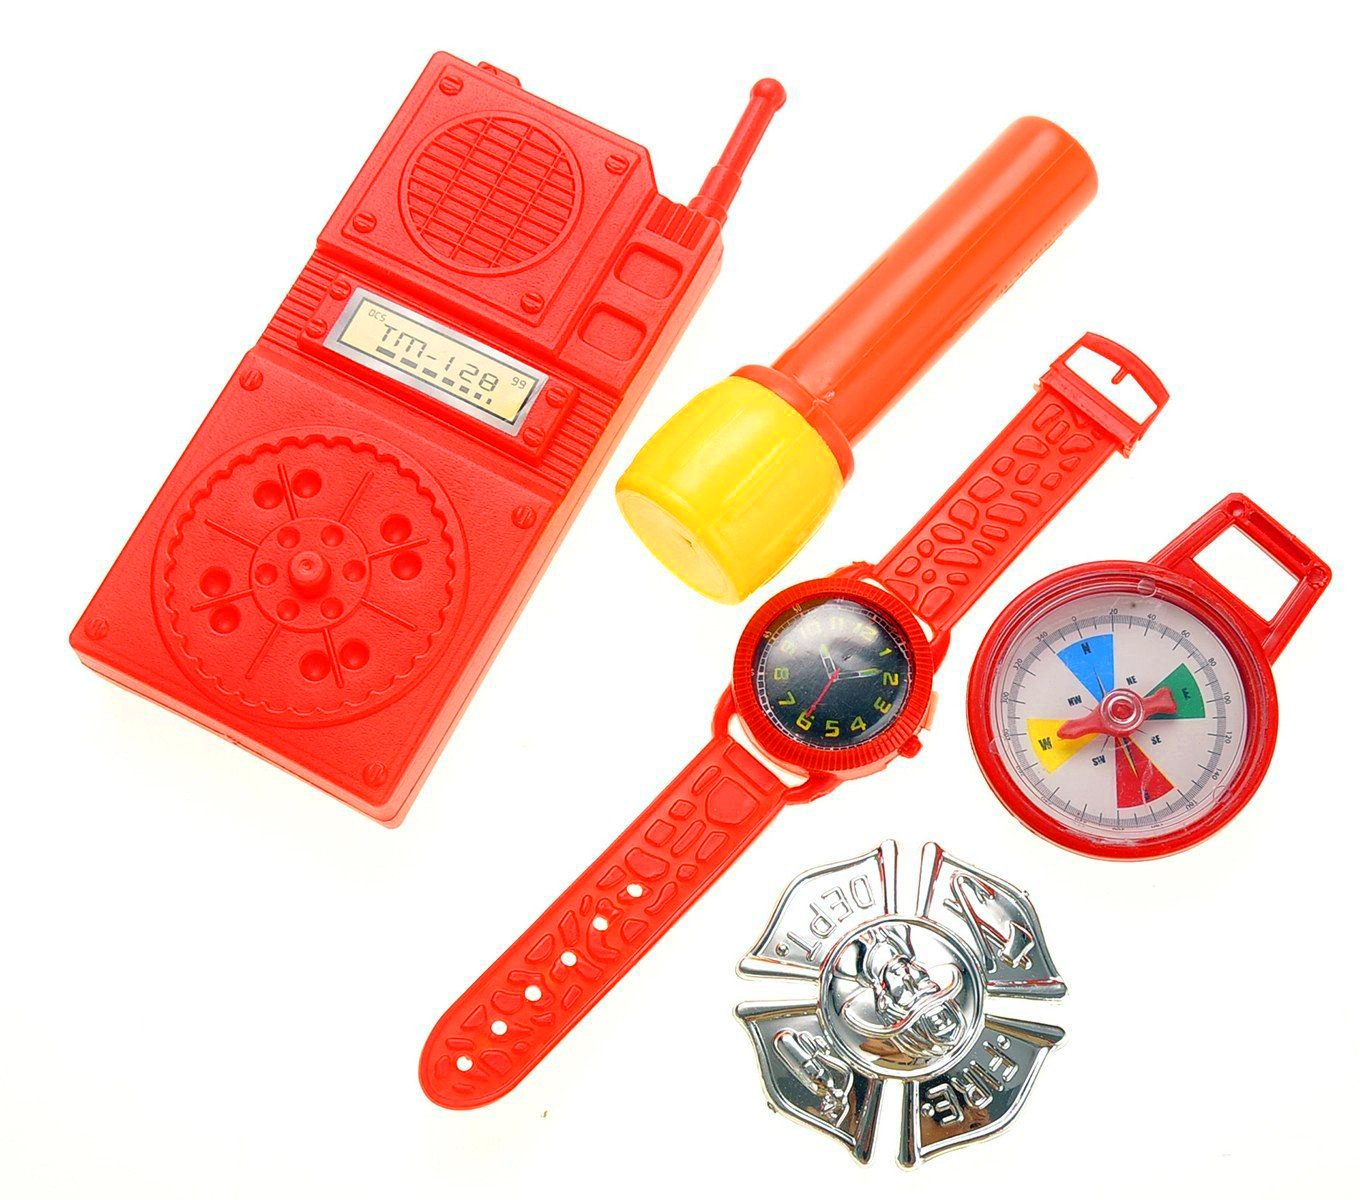 Liberty Imports 10 Pcs Fireman Gear Firefighter Costume Role Play Toy Set for Kids with Helmet and Accessories 5022